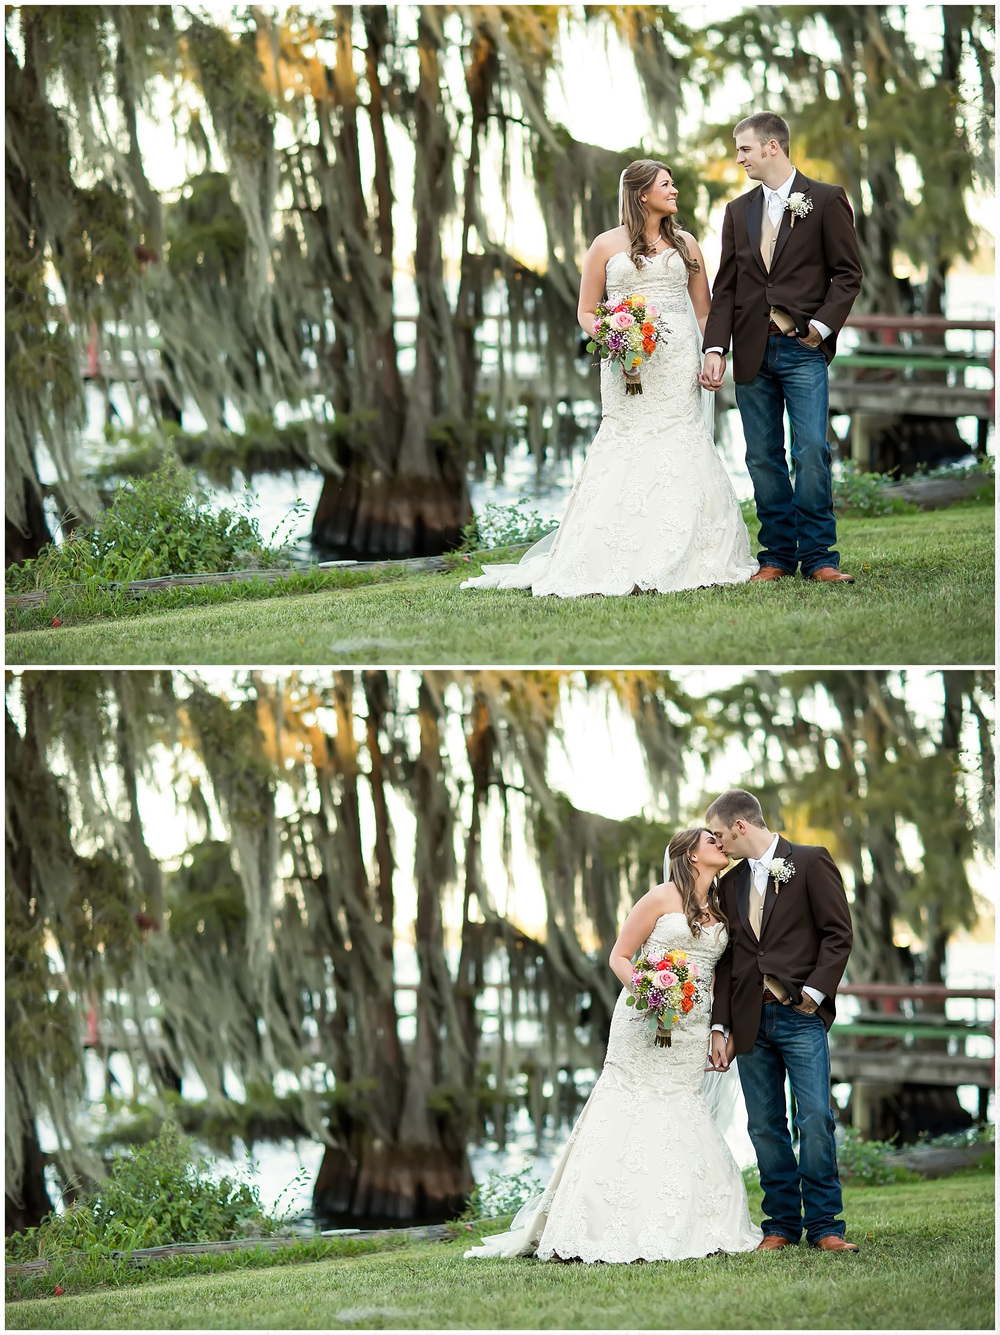 McCoy_ElKarubah_Shreveport_Wedding_14.jpg